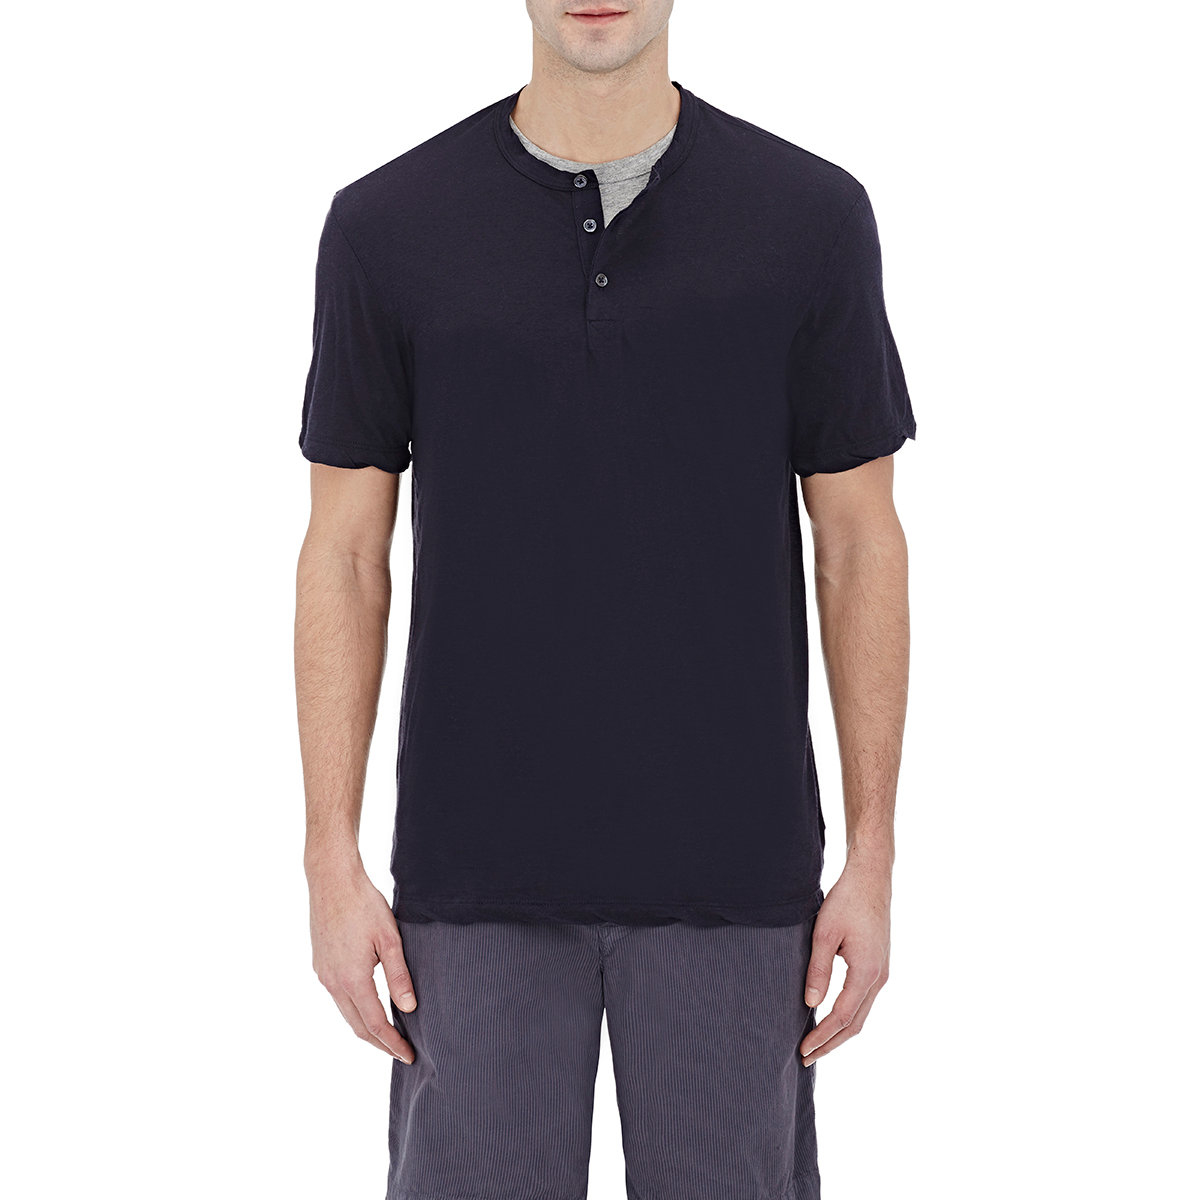 James perse short sleeve henley in black lyst for James perse henley shirt